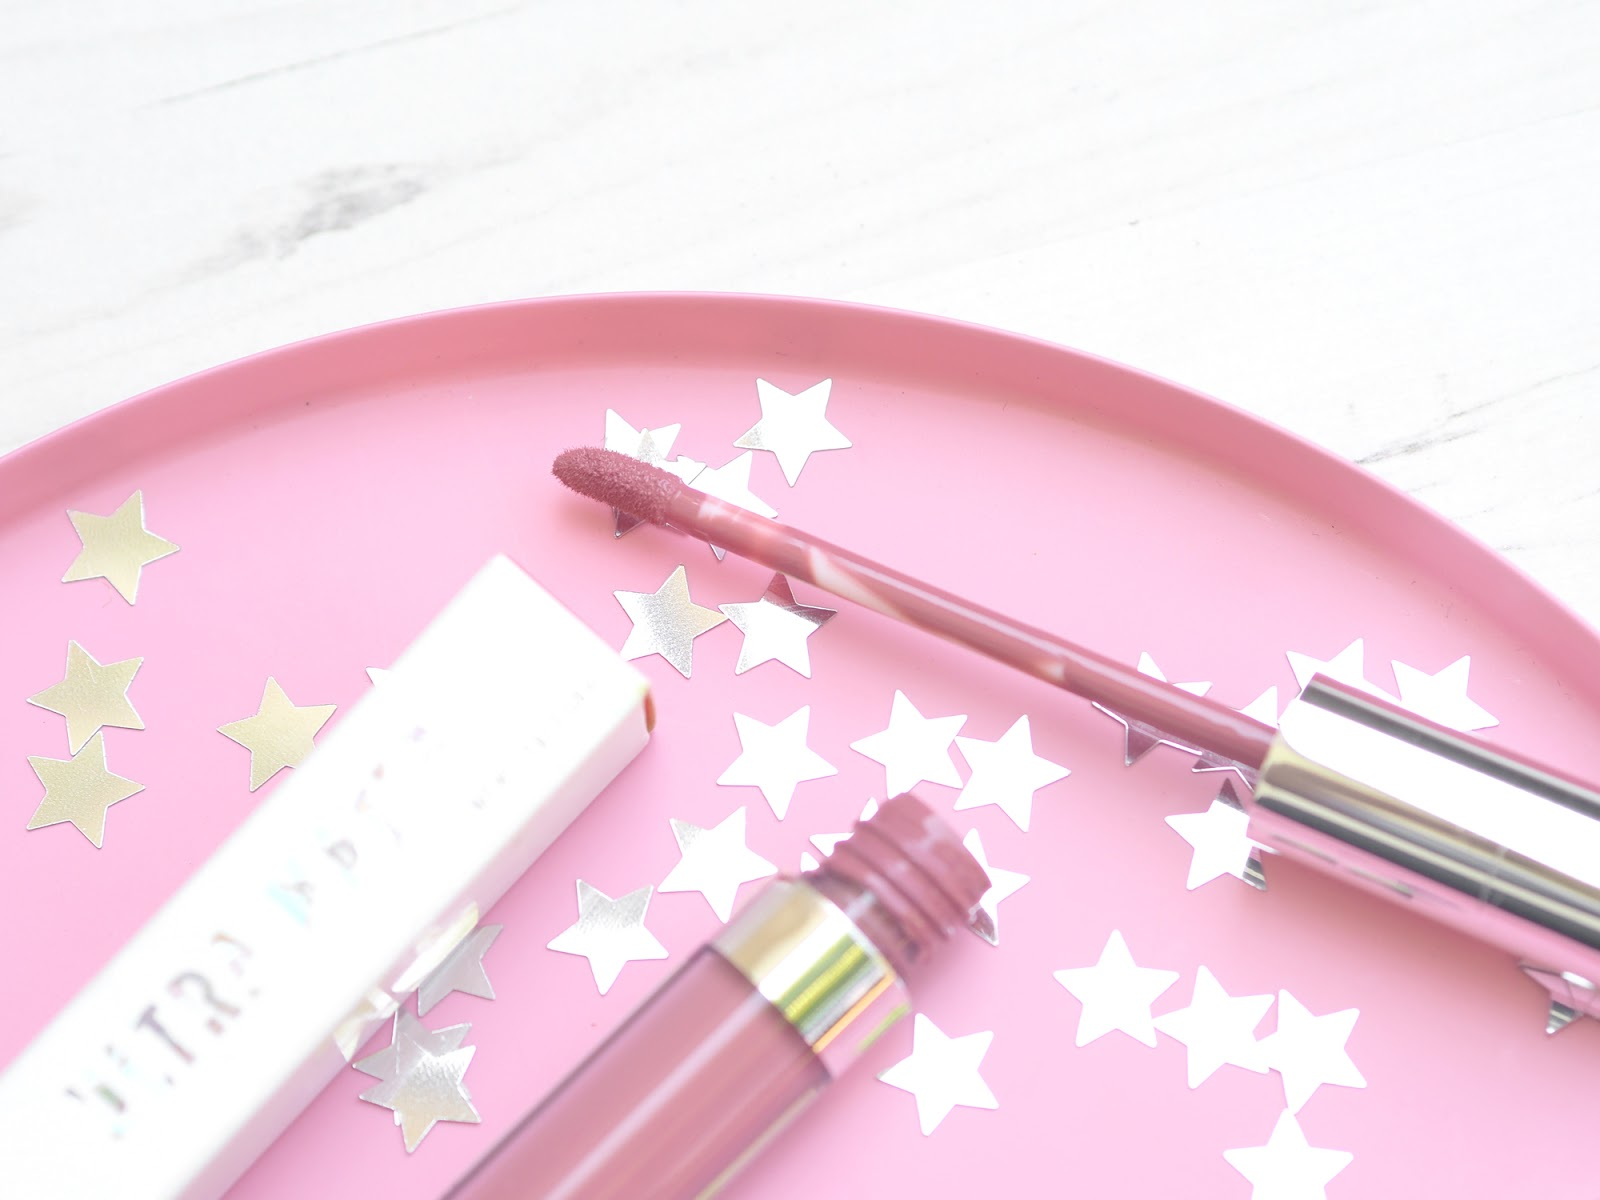 ColourPop Ultra Matte Lips Lumiere 2 Review